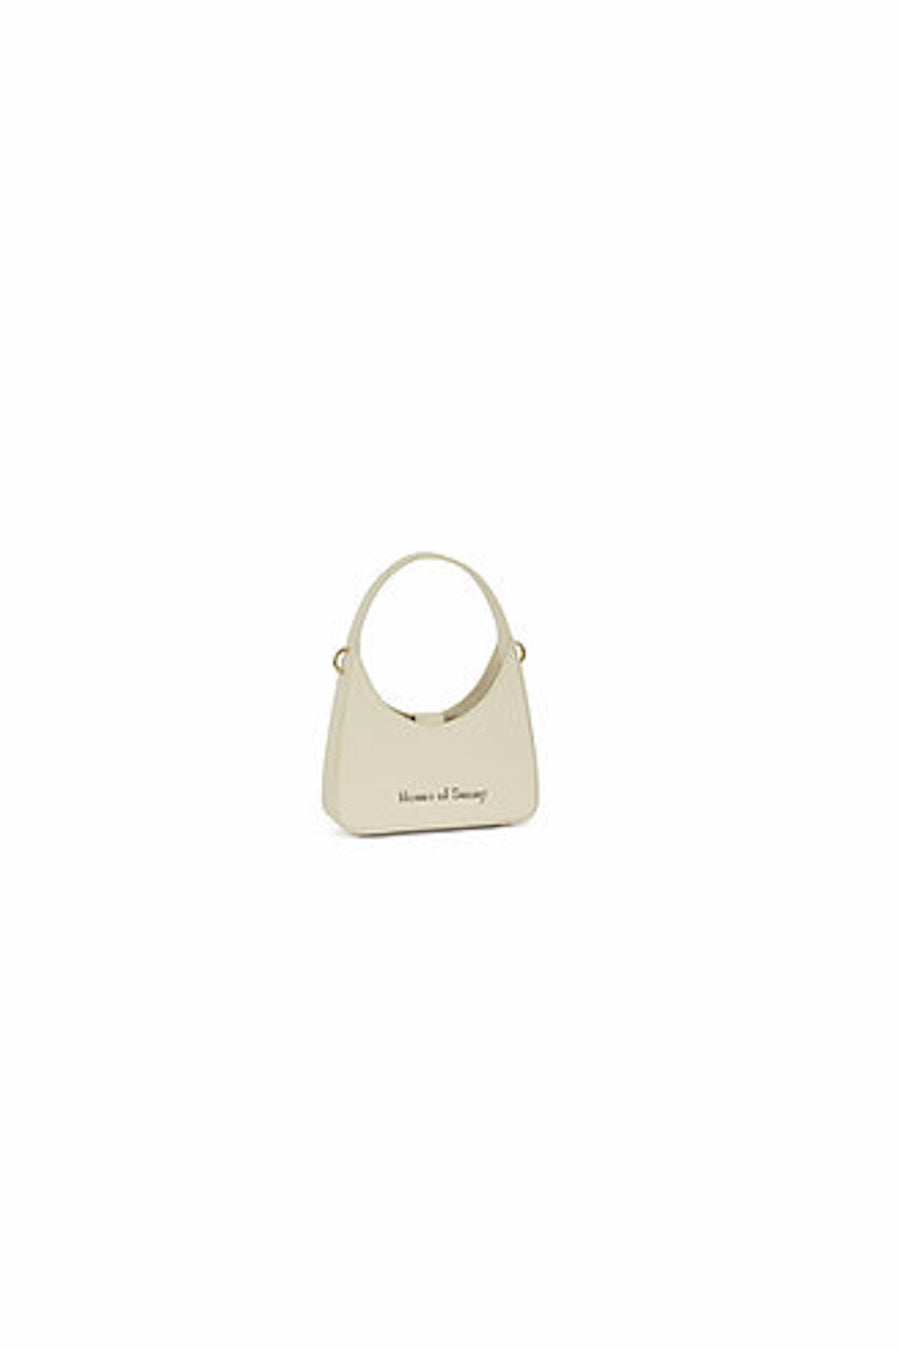 Icon Shoulder Bag | Sand | bags NZ | HOUSE OF SUNNY NZ | Black Box Boutique Auckland | Womens Fashion NZ